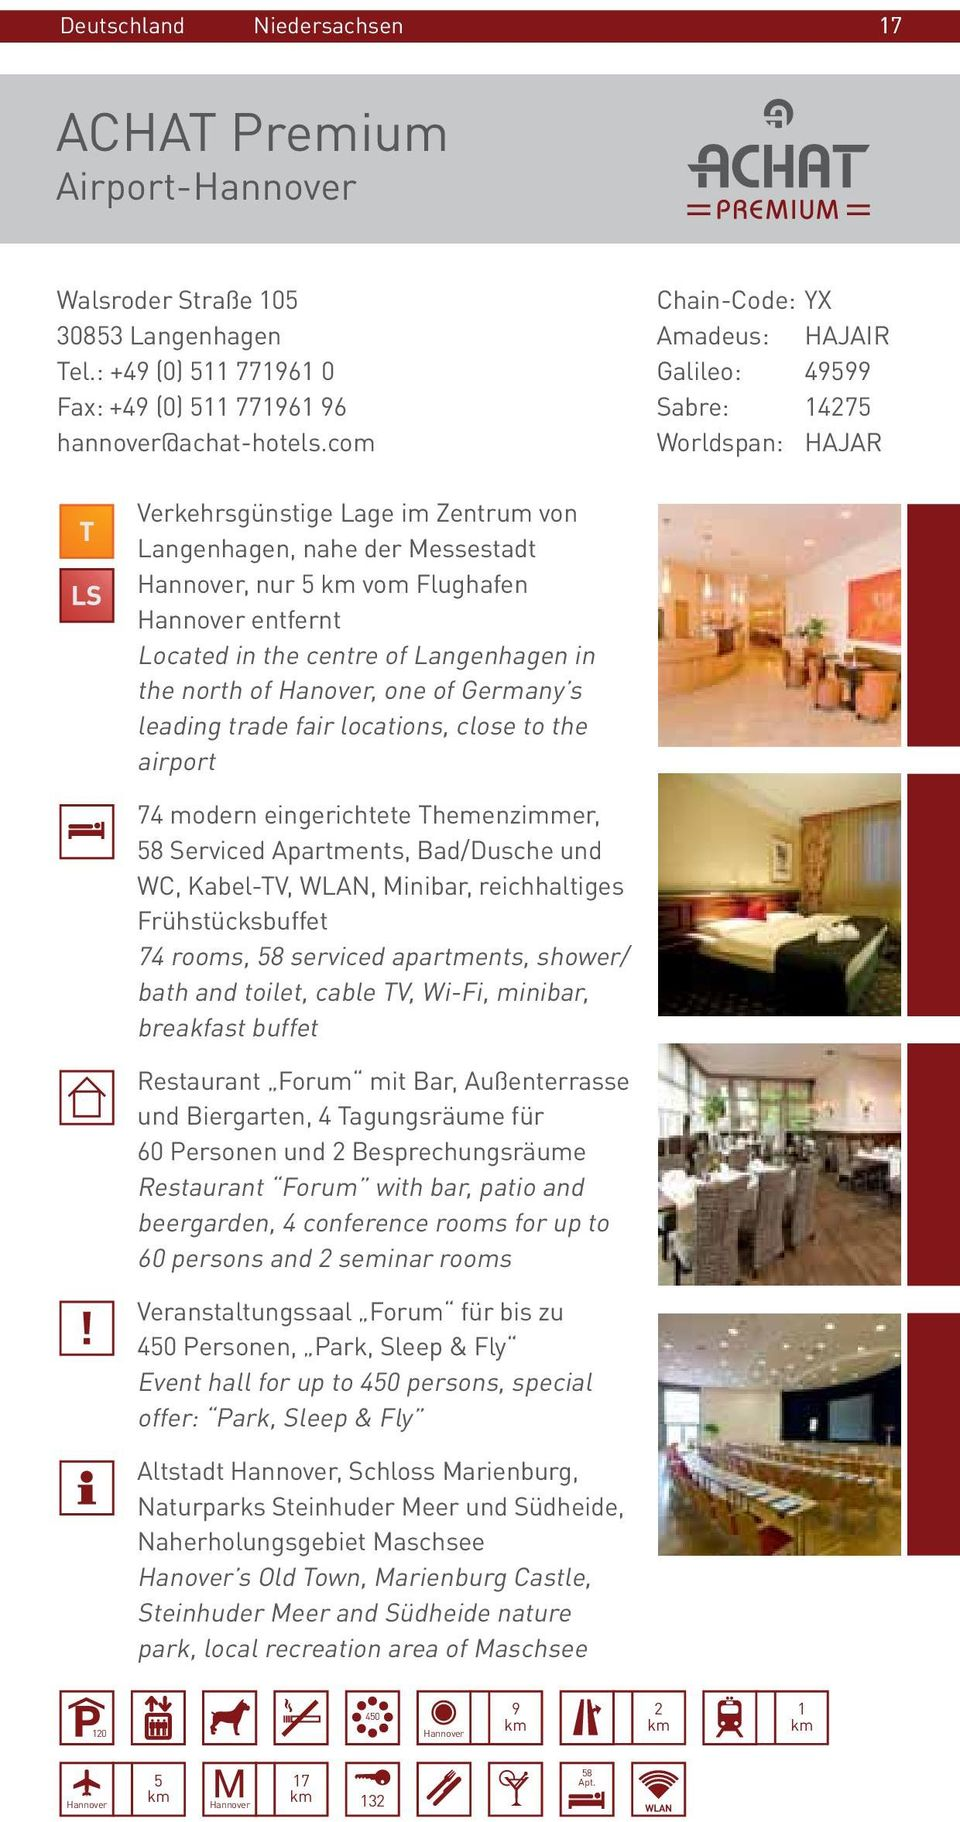 centre of Langenhagen in the north of Hanover, one of Germany s leading trade fair locations, close to the airport 74 modern eingerichtete Themenzimmer, 58 Serviced Apartments, Bad/Dusche und WC,